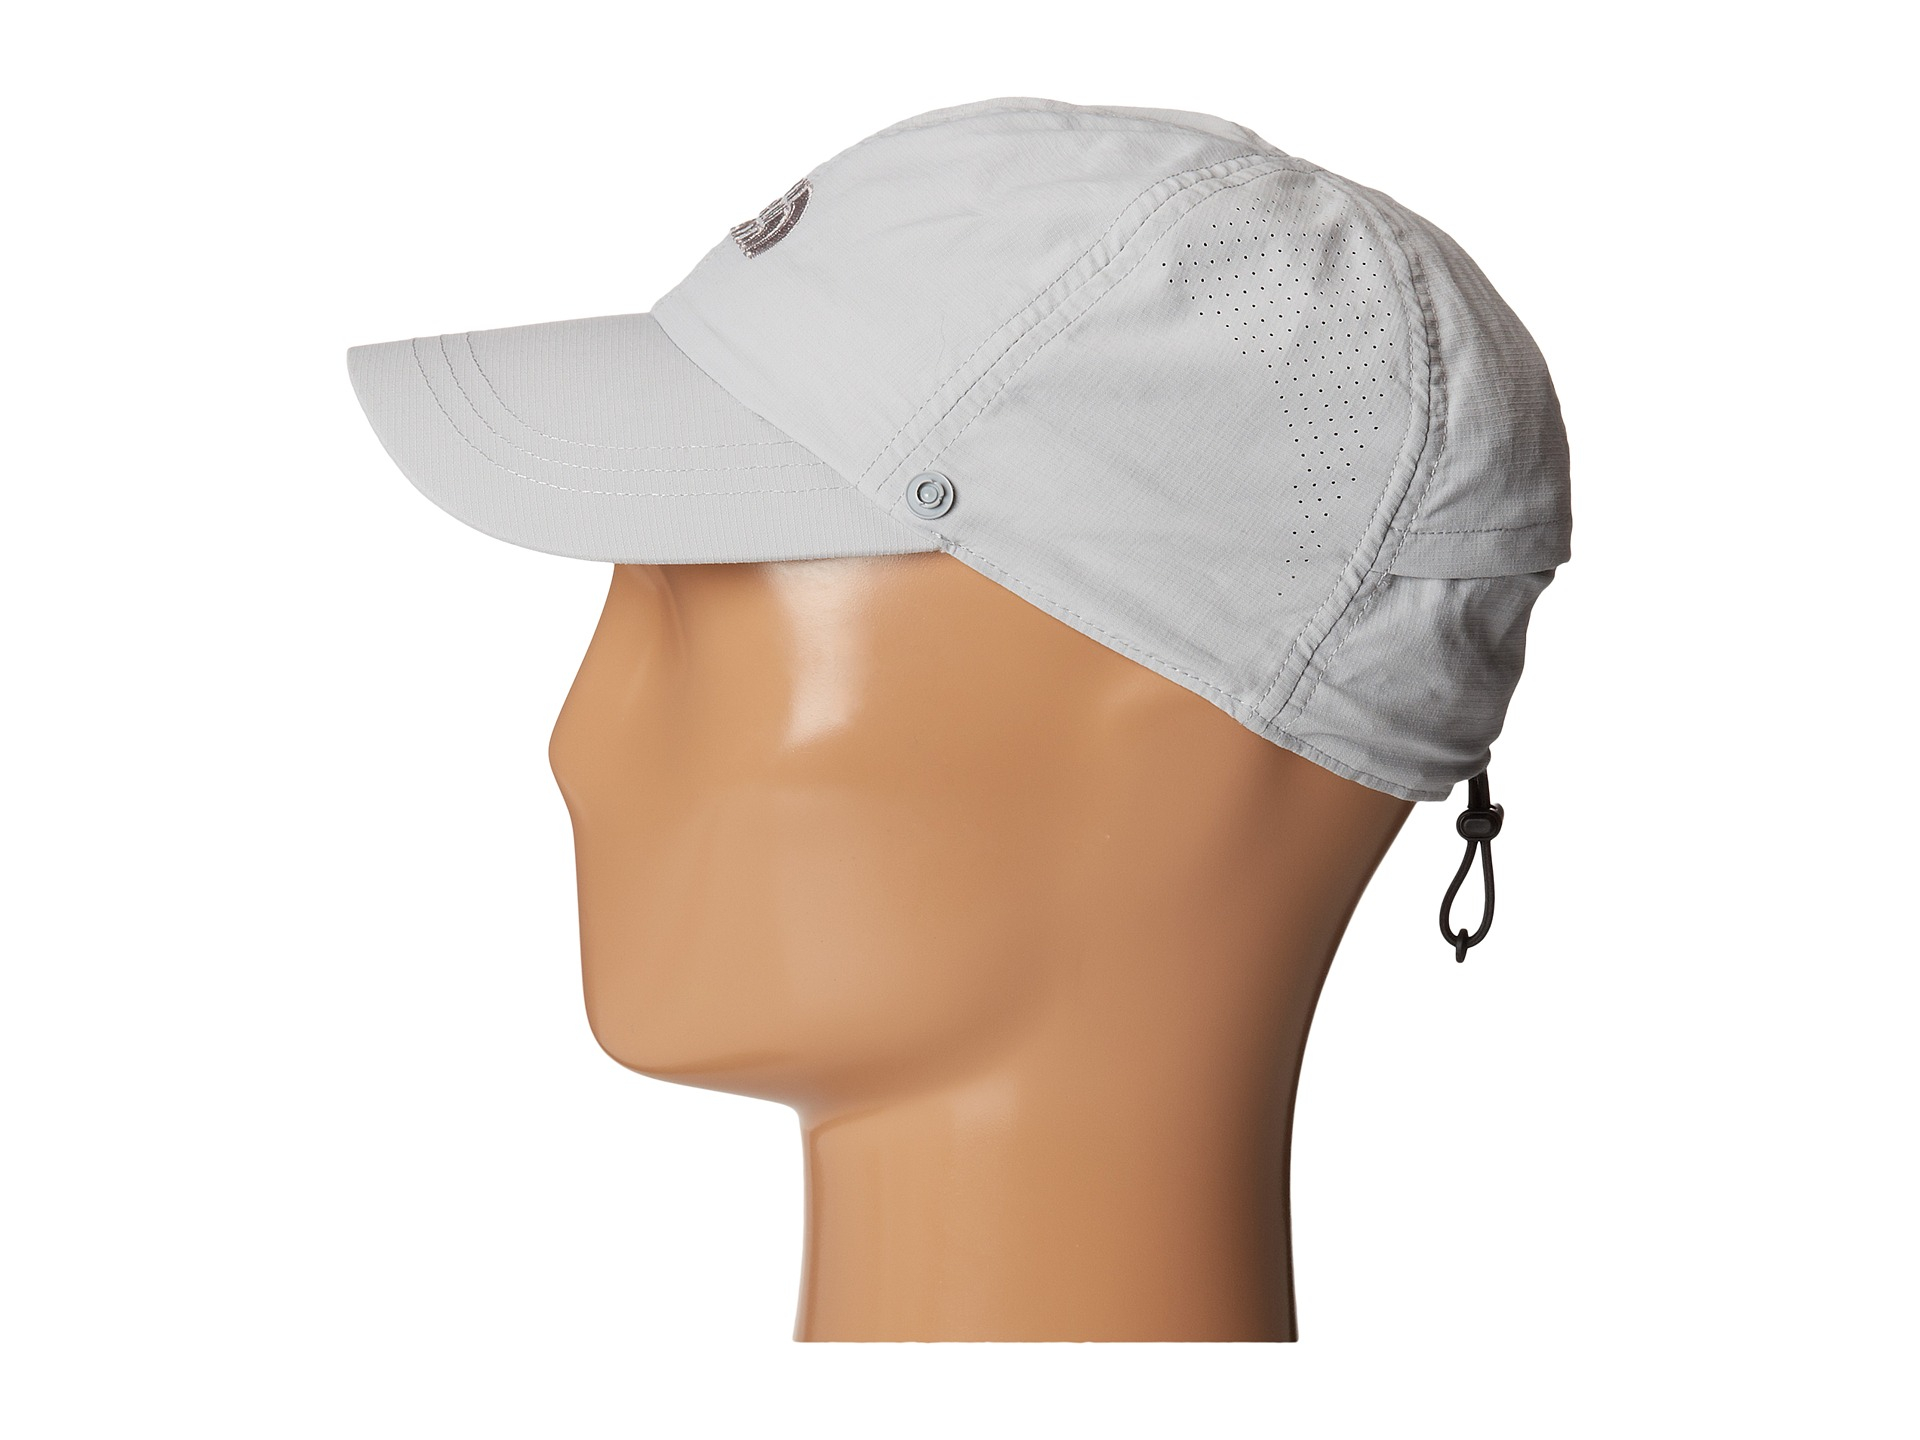 Lyst - The North Face Sun Shield Ball Cap in Gray 688d87d8ef9